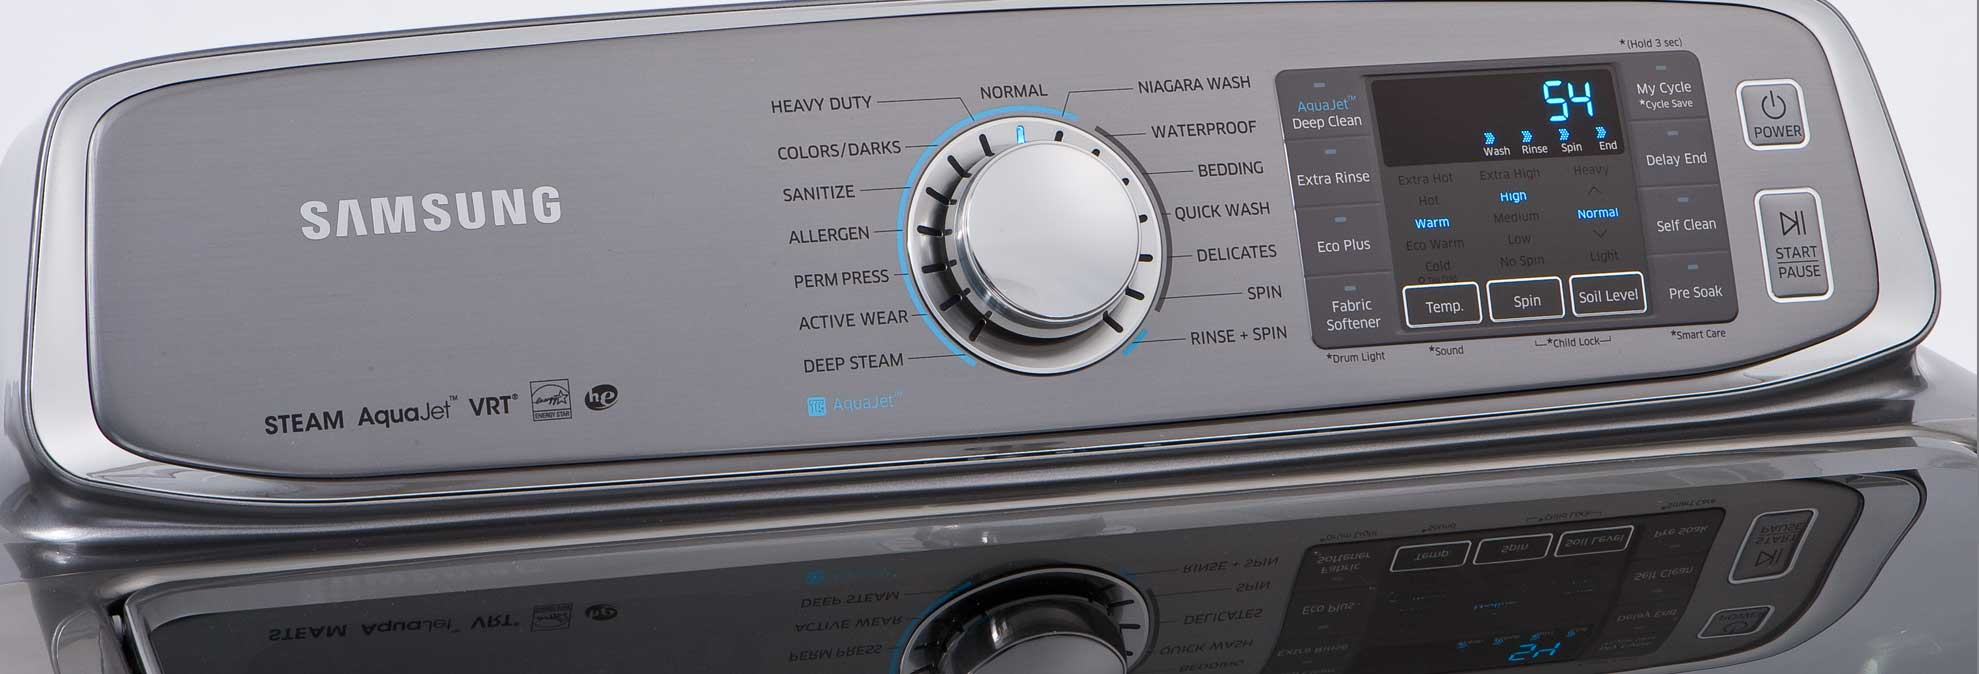 reports of samsung washers prompts company to issue safety warning consumer reports